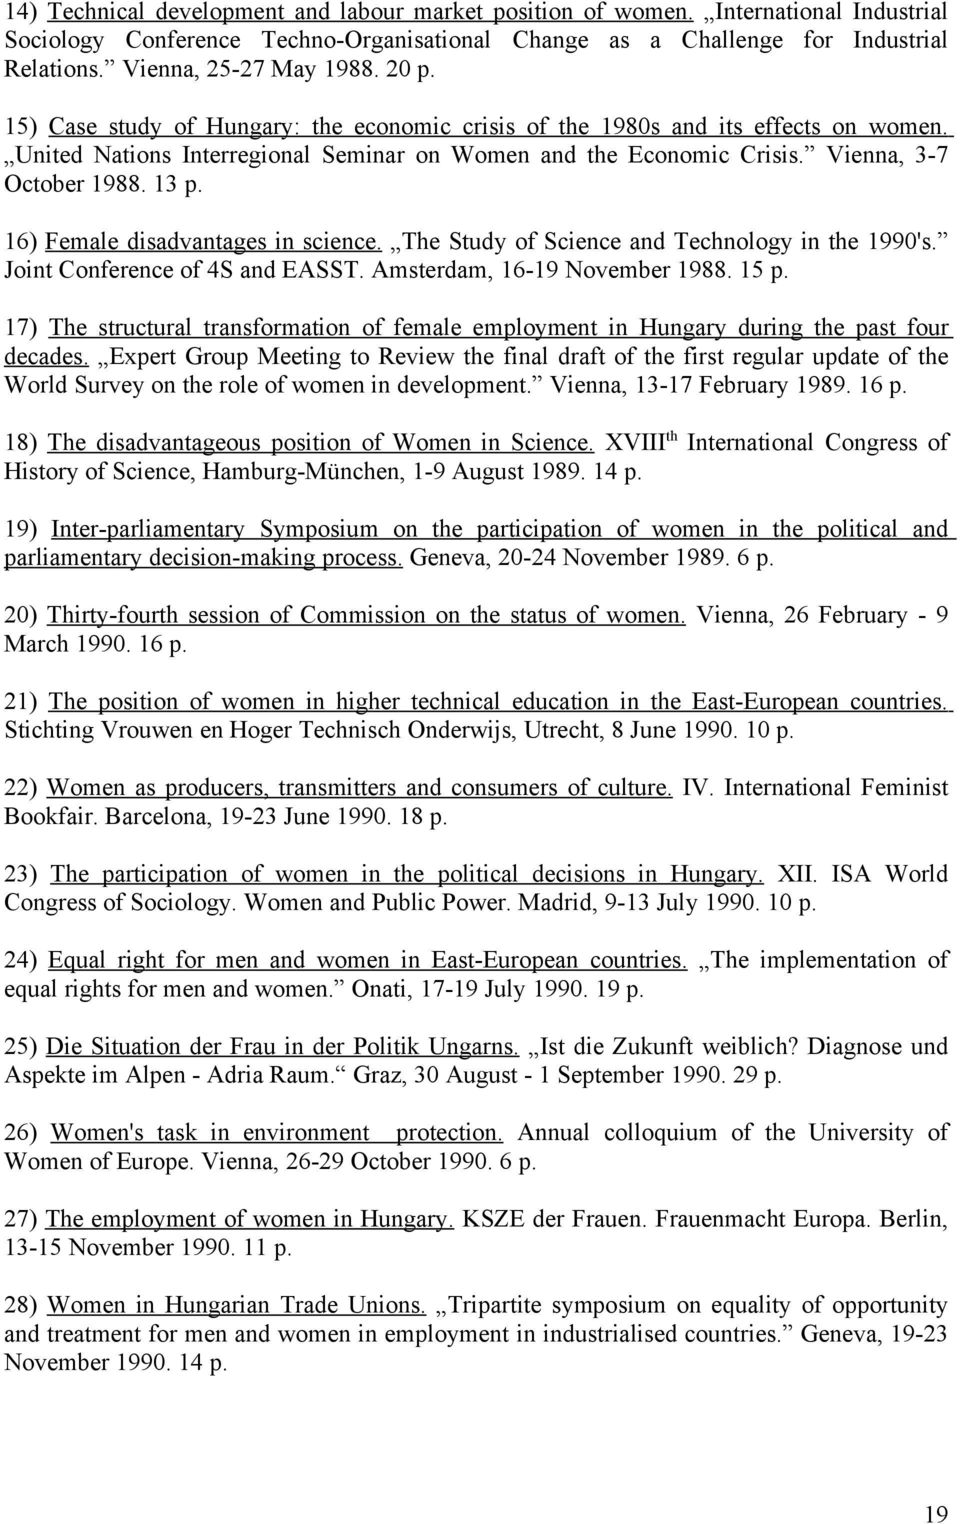 Vienna, 3-7 October 1988. 13 p. 16) Female disadvantages in science. The Study of Science and Technology in the 1990's. Joint Conference of 4S and EASST. Amsterdam, 16-19 November 1988. 15 p.